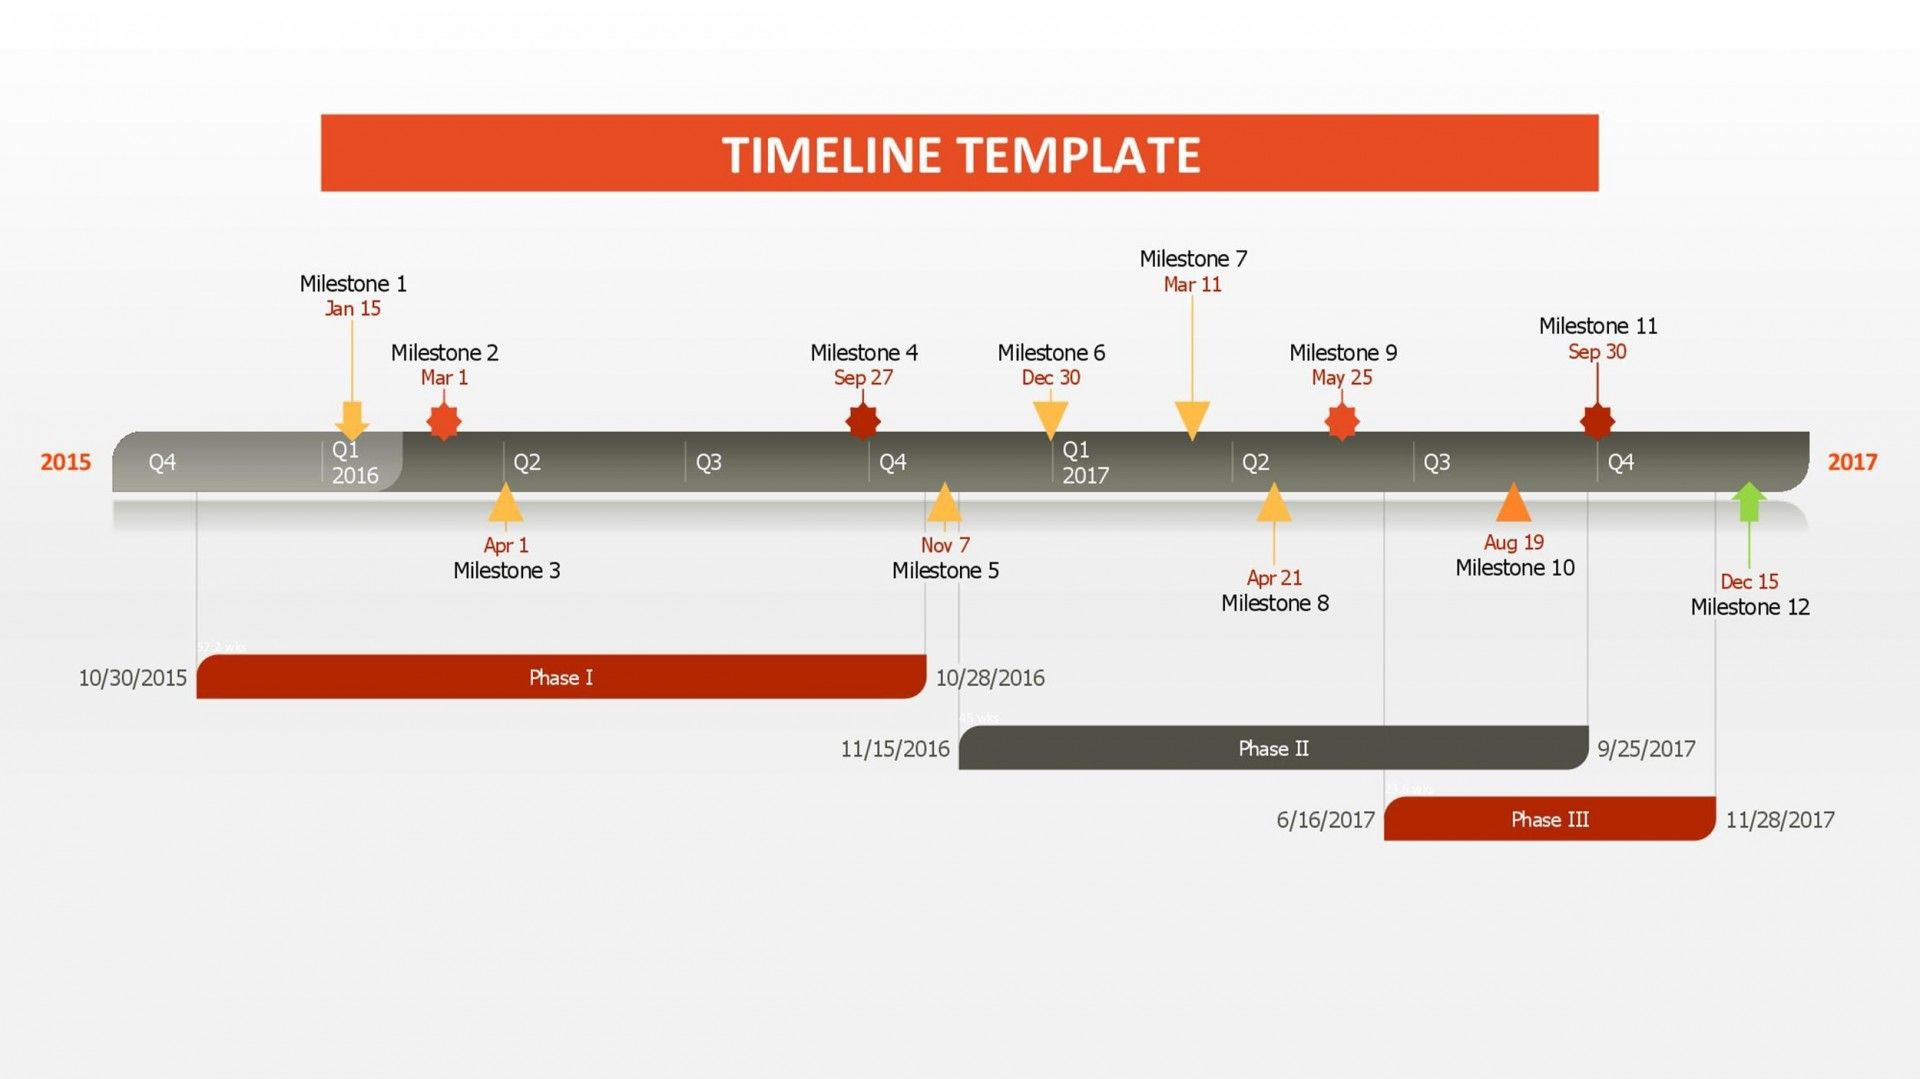 006 Top Timeline Template In Word Picture  2010 Wordpres Free1920